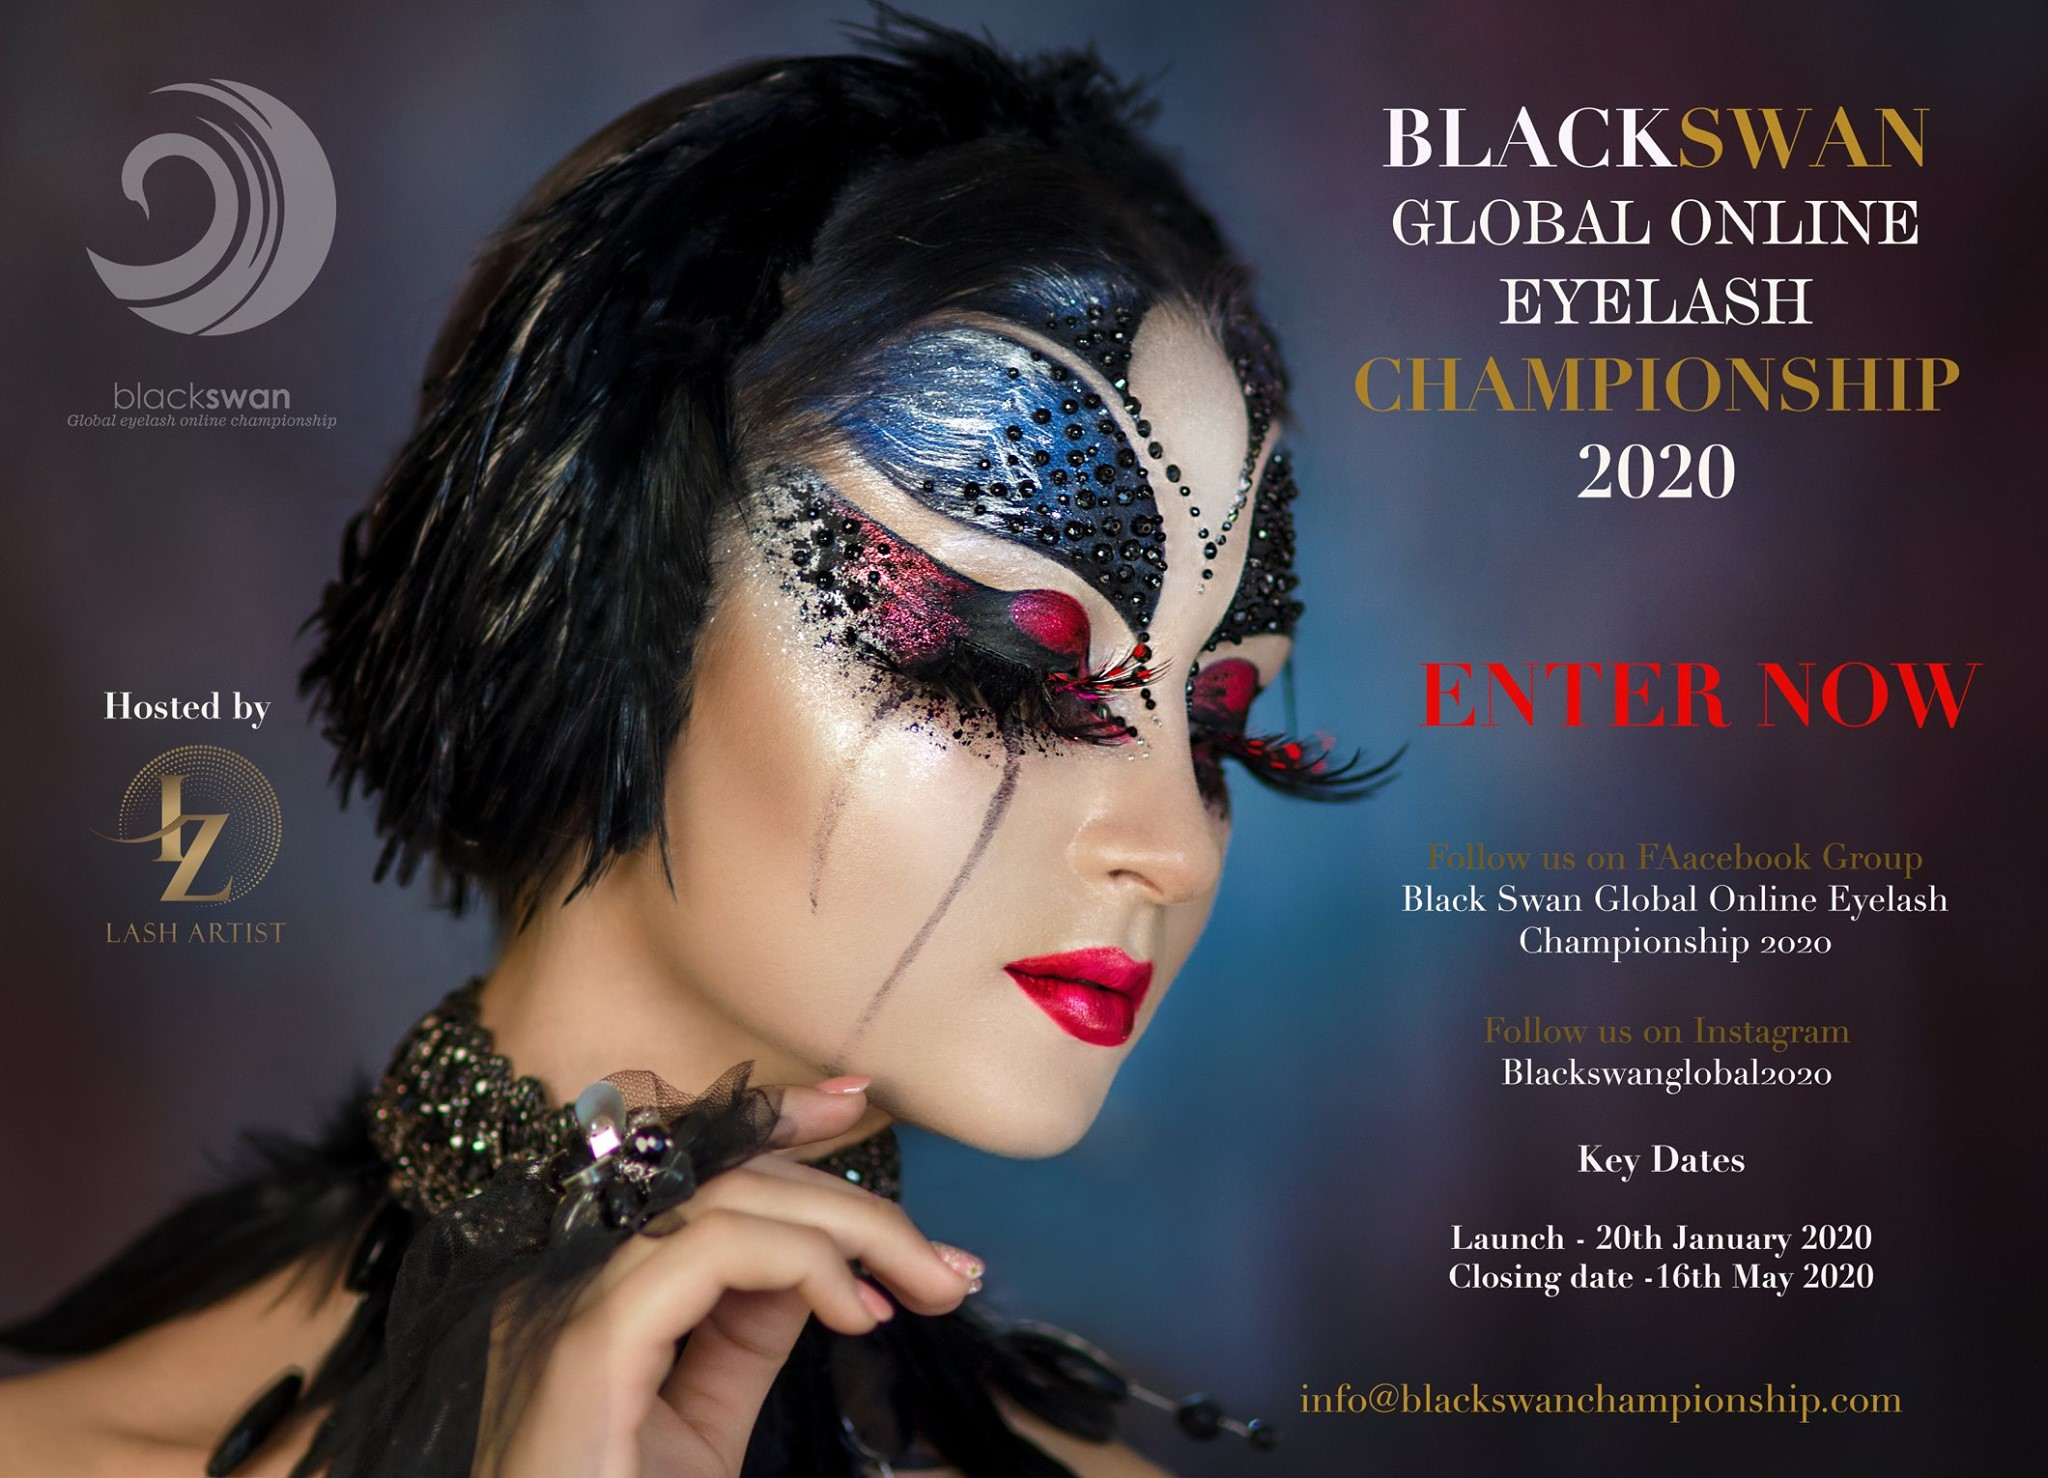 black swan global online eyelash